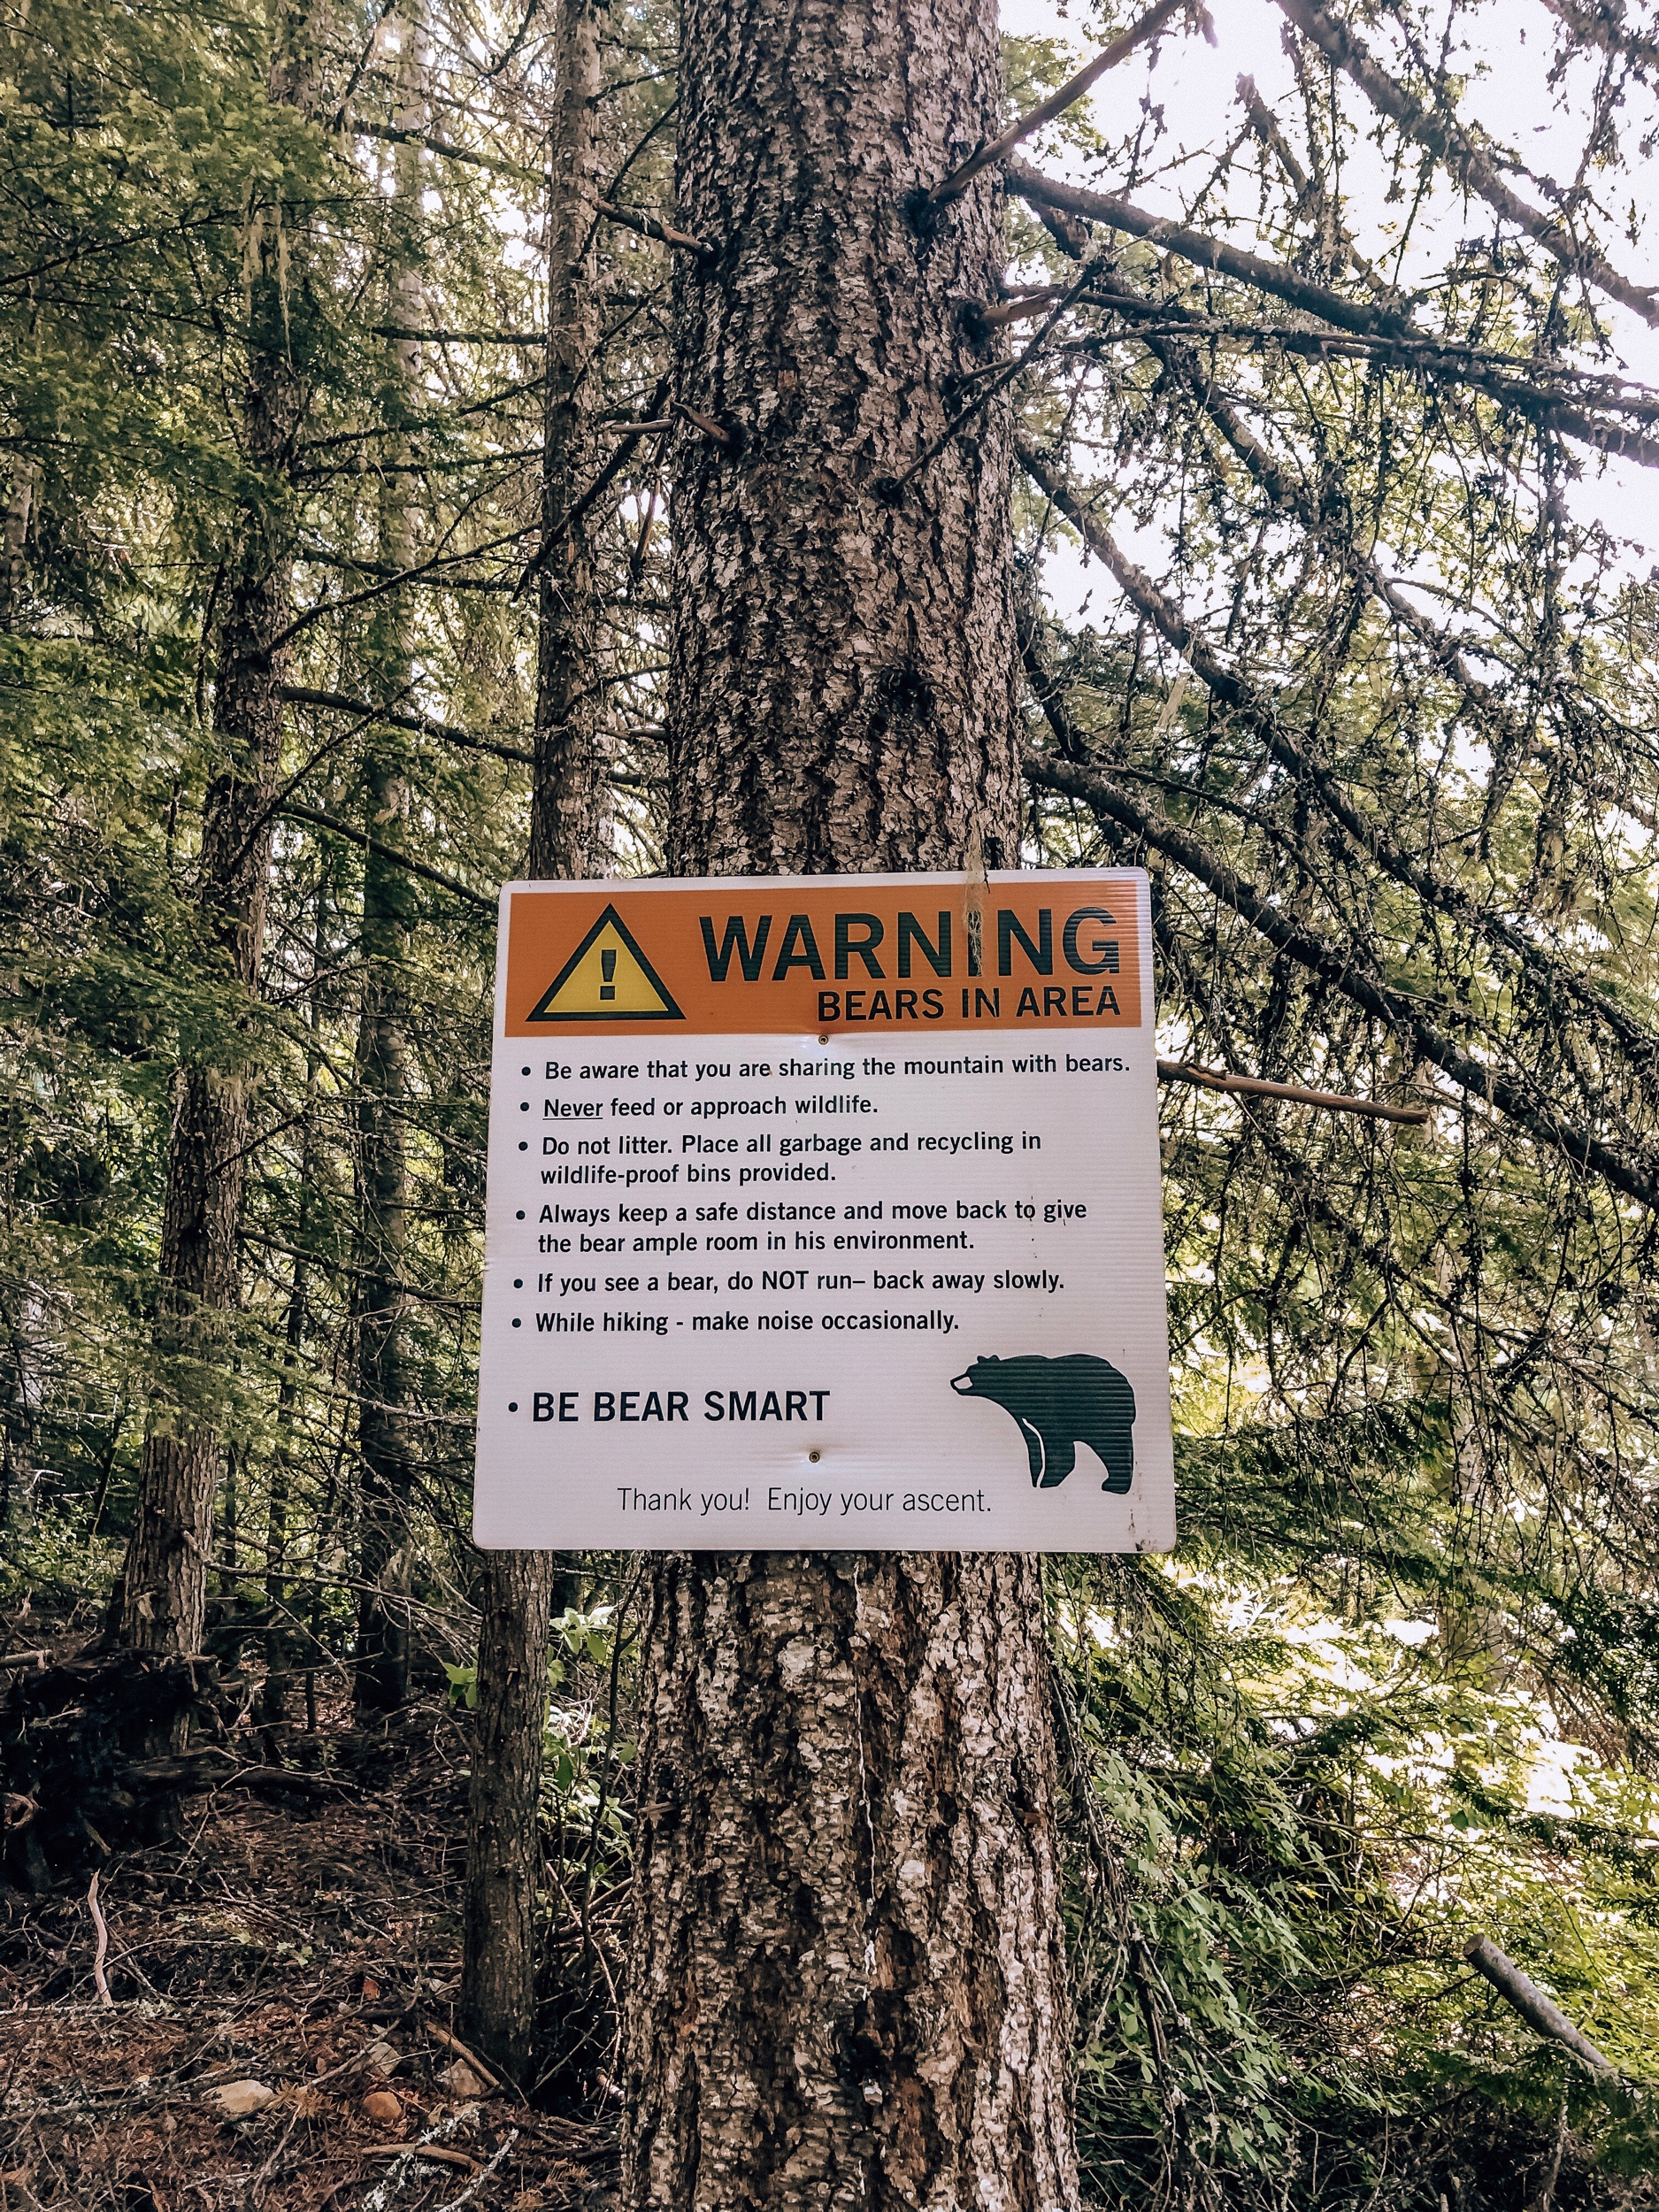 Bear safety on Whistler Blackcomb